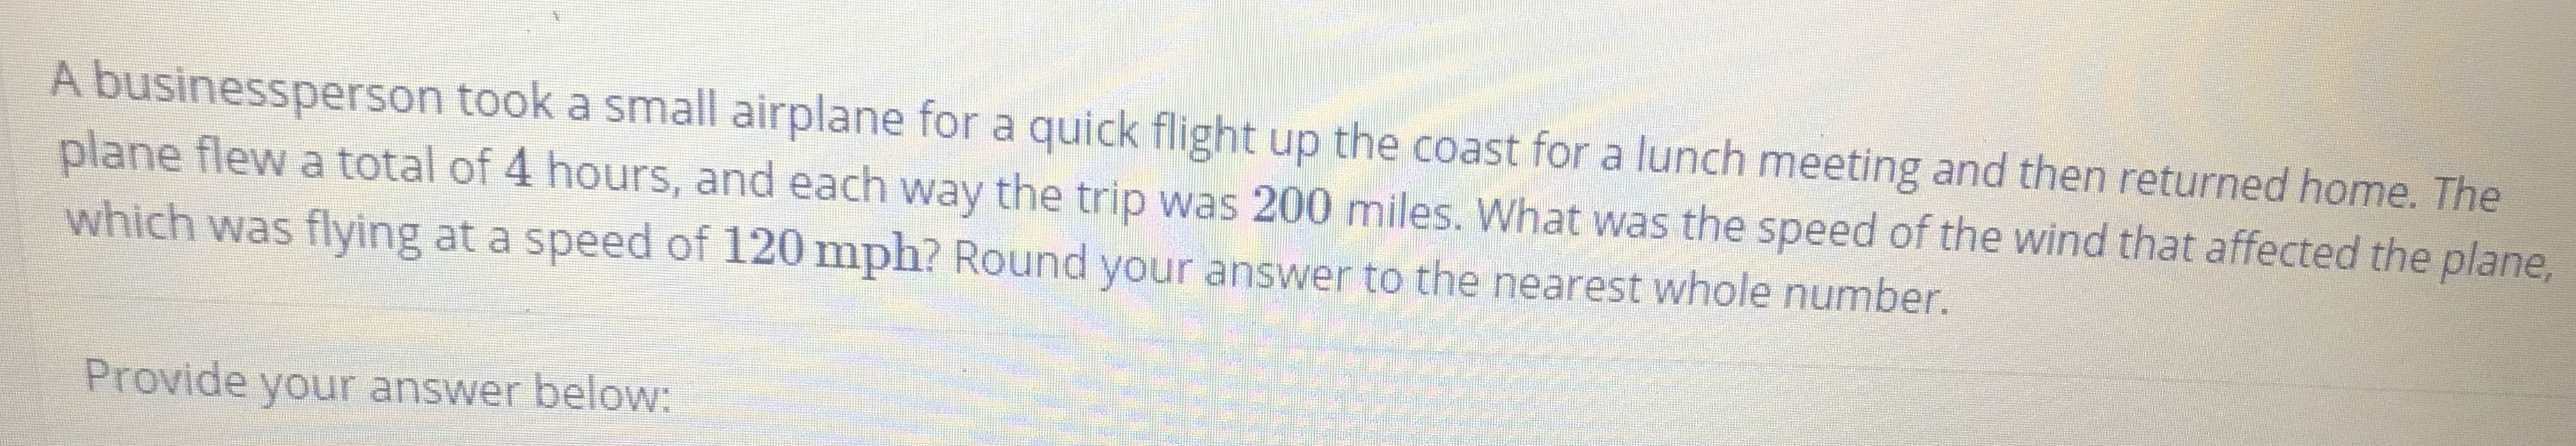 A businessperson took a small airplane for a quick flight up the coast for a lunch meeting and then returned home. The plane flew a total of 4 hours, and each way the trip was 200 miles. What was the speed of the wind that affected the plane, which was flying at a speed of 120 mph? Round your answer to the nearest whole number. Provide your answer below: